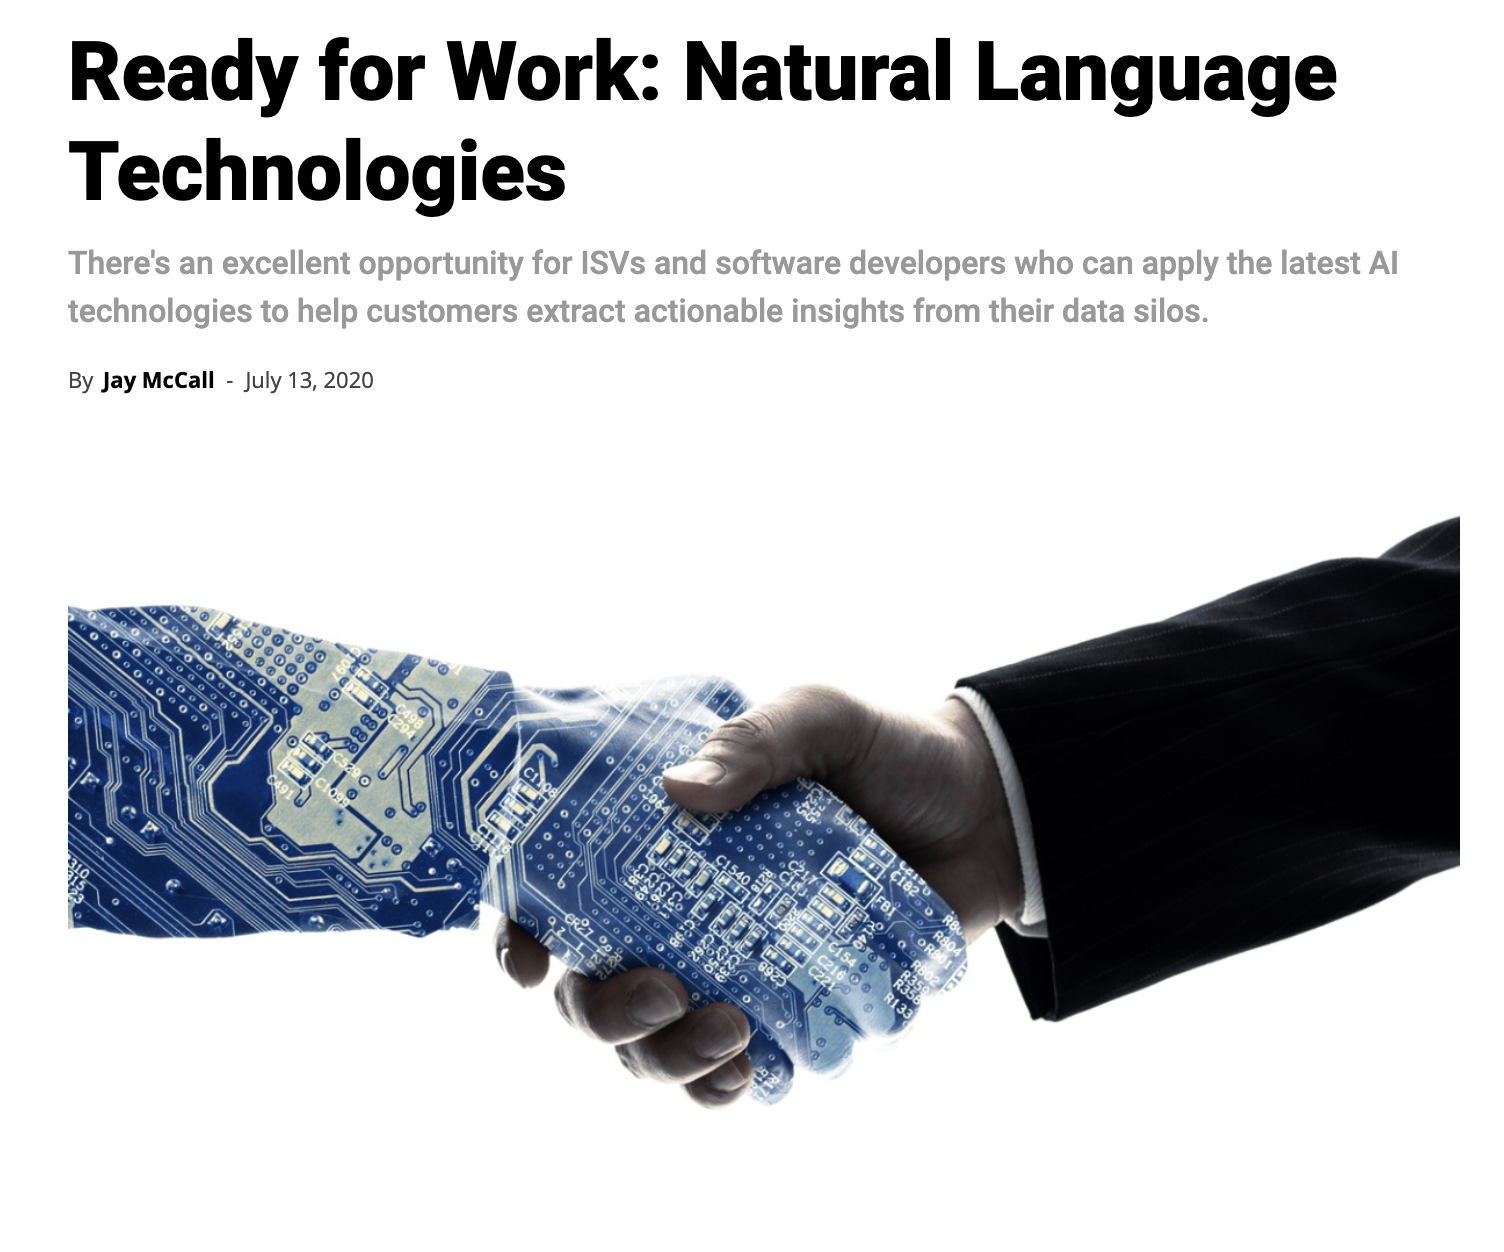 Ready for Work: Natural Language Technologies